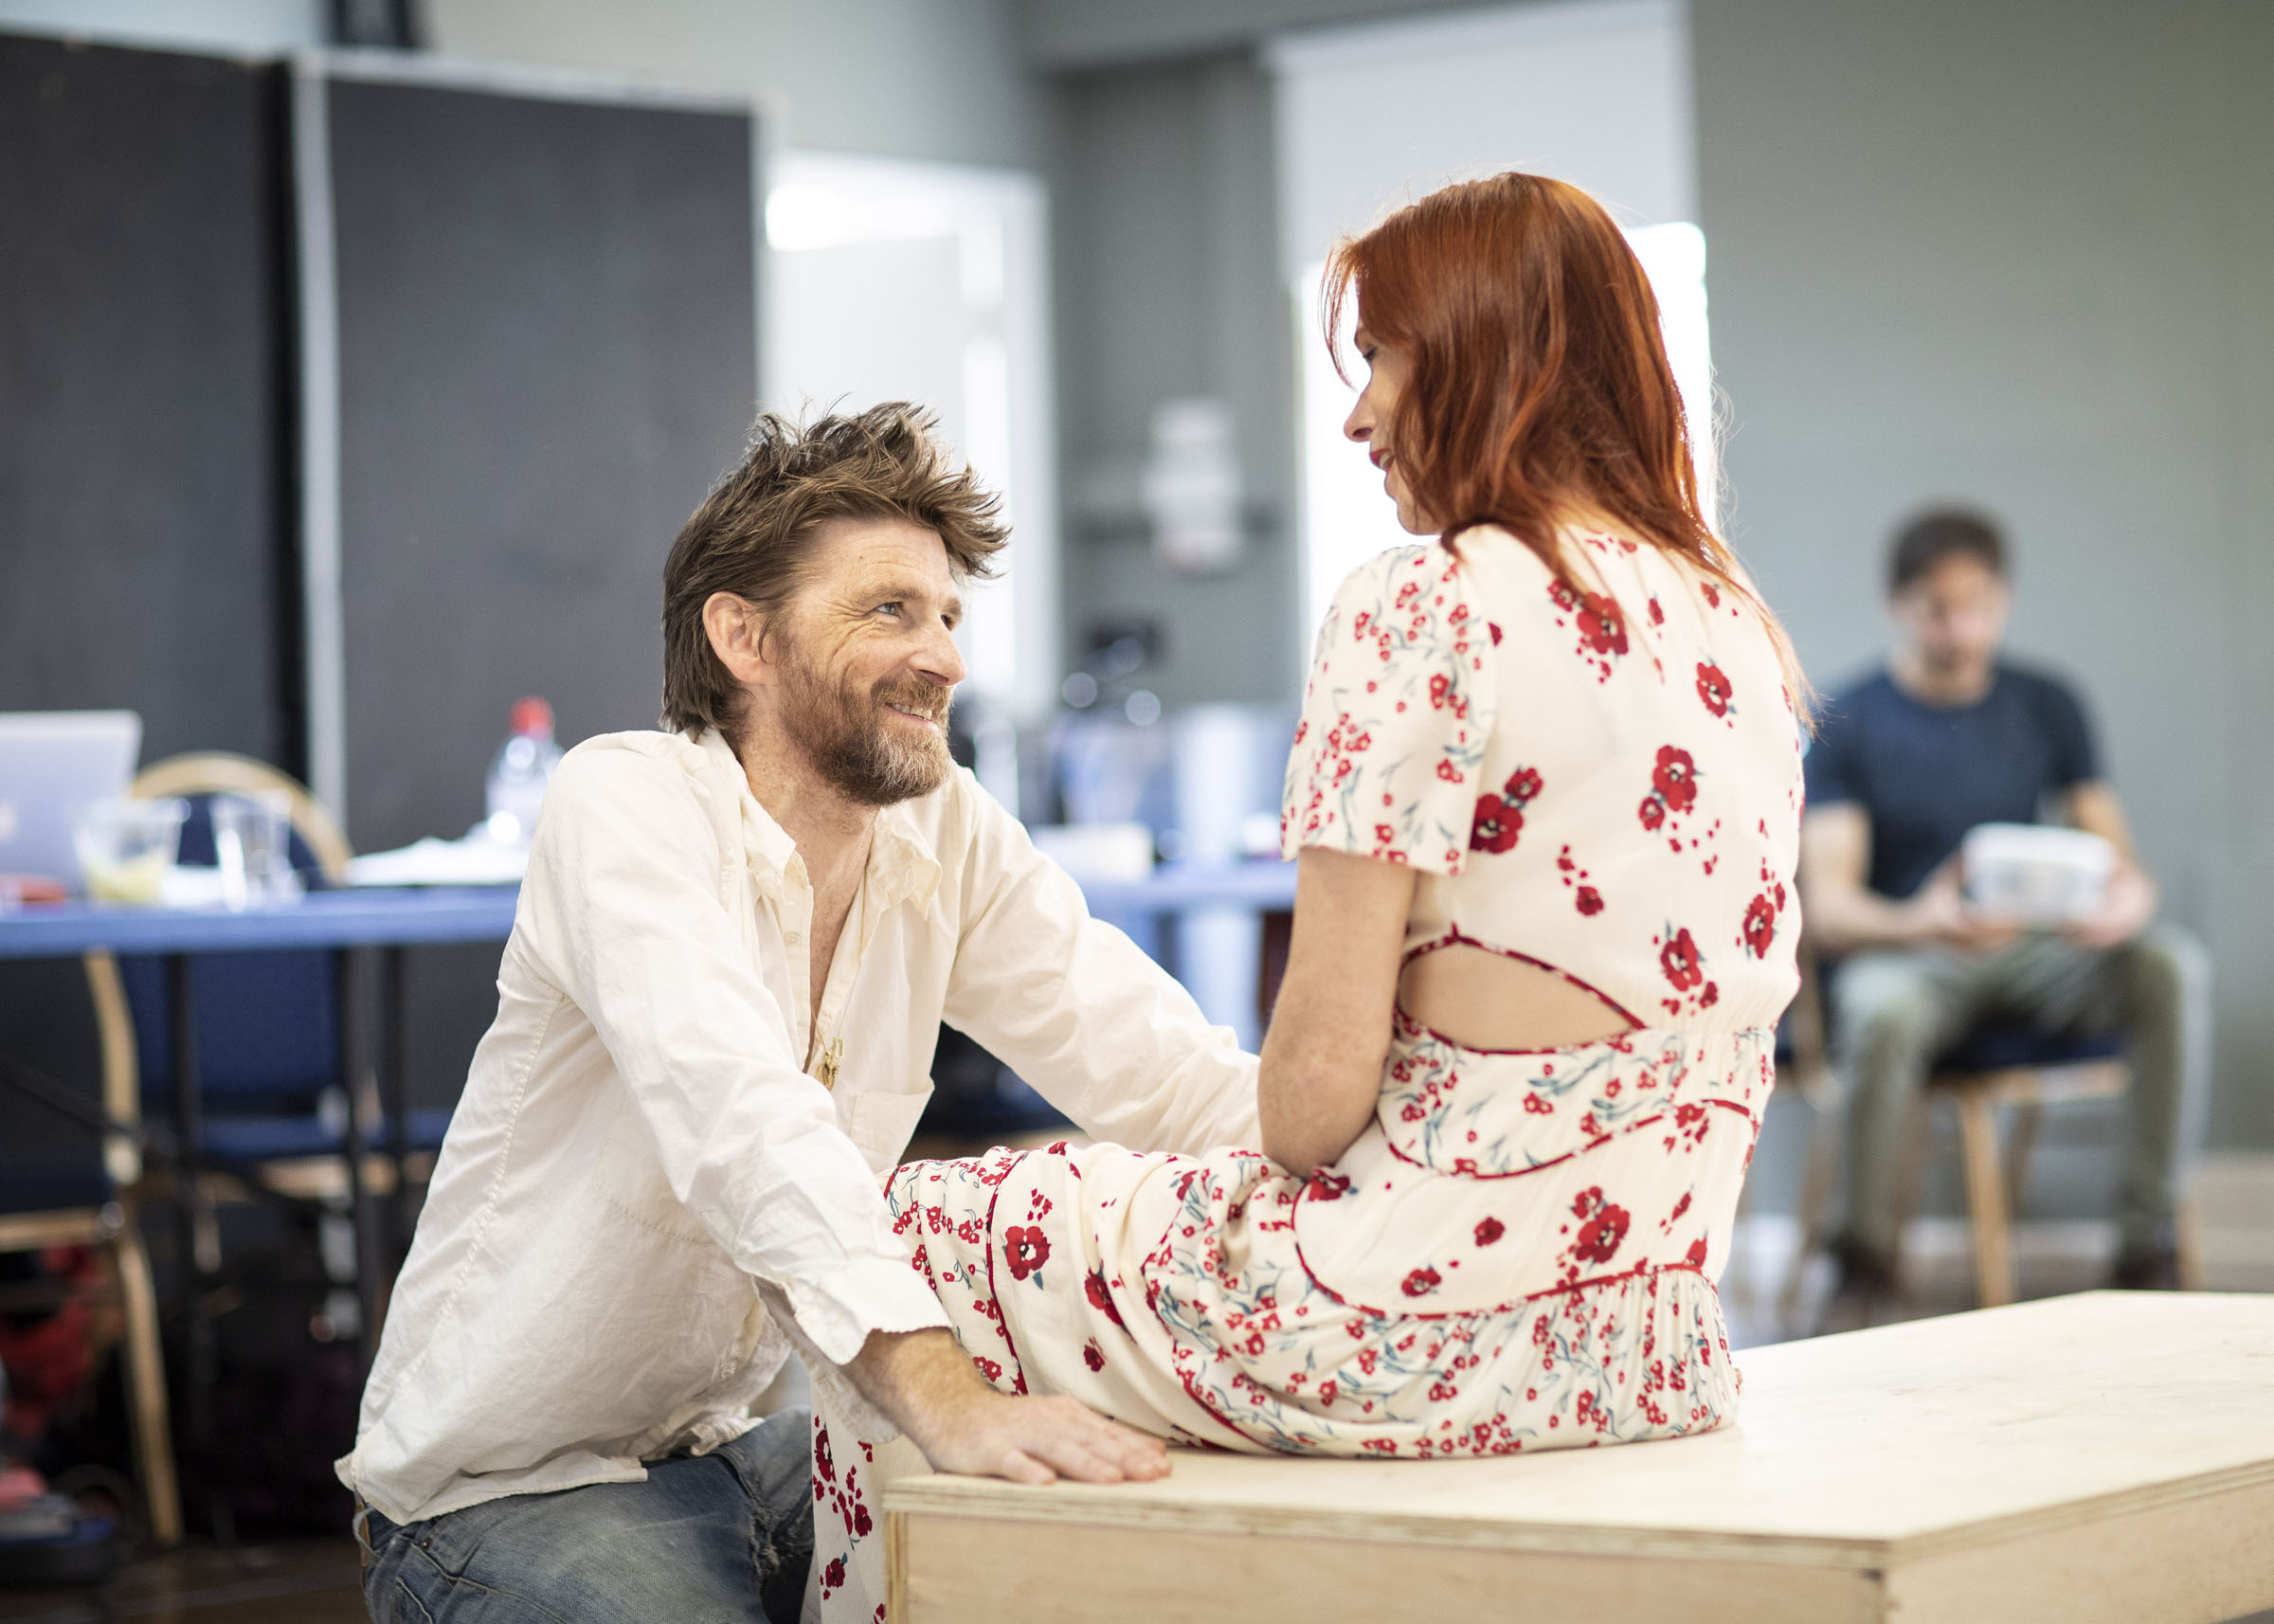 Paul Anderson and Audrey Fleurot laughing during Tartuffe rehearsals